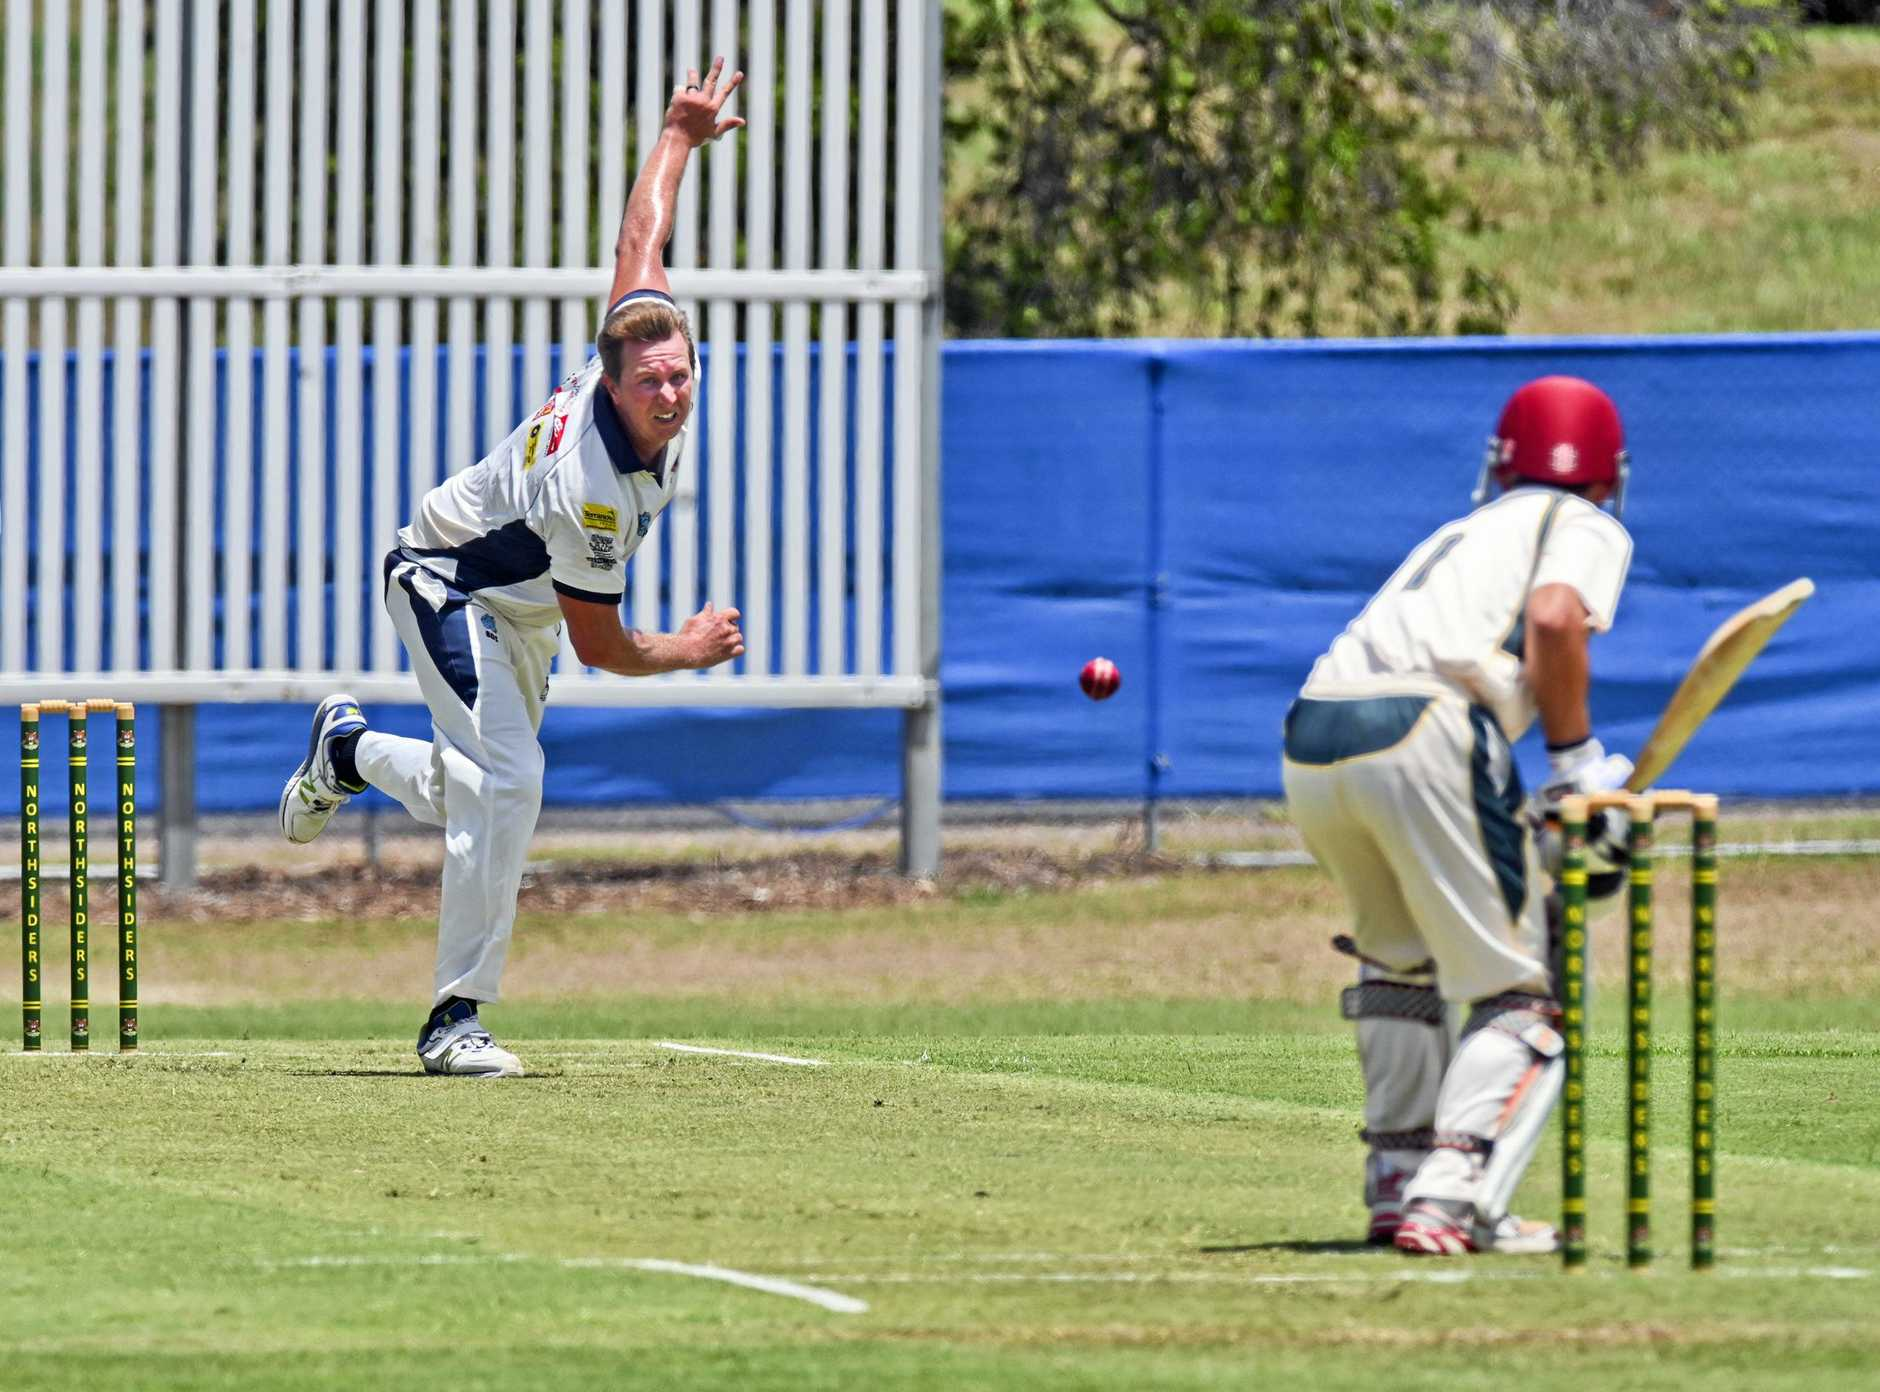 Laidley's Ben Gibson put in a strong bowling performance against Centrals.